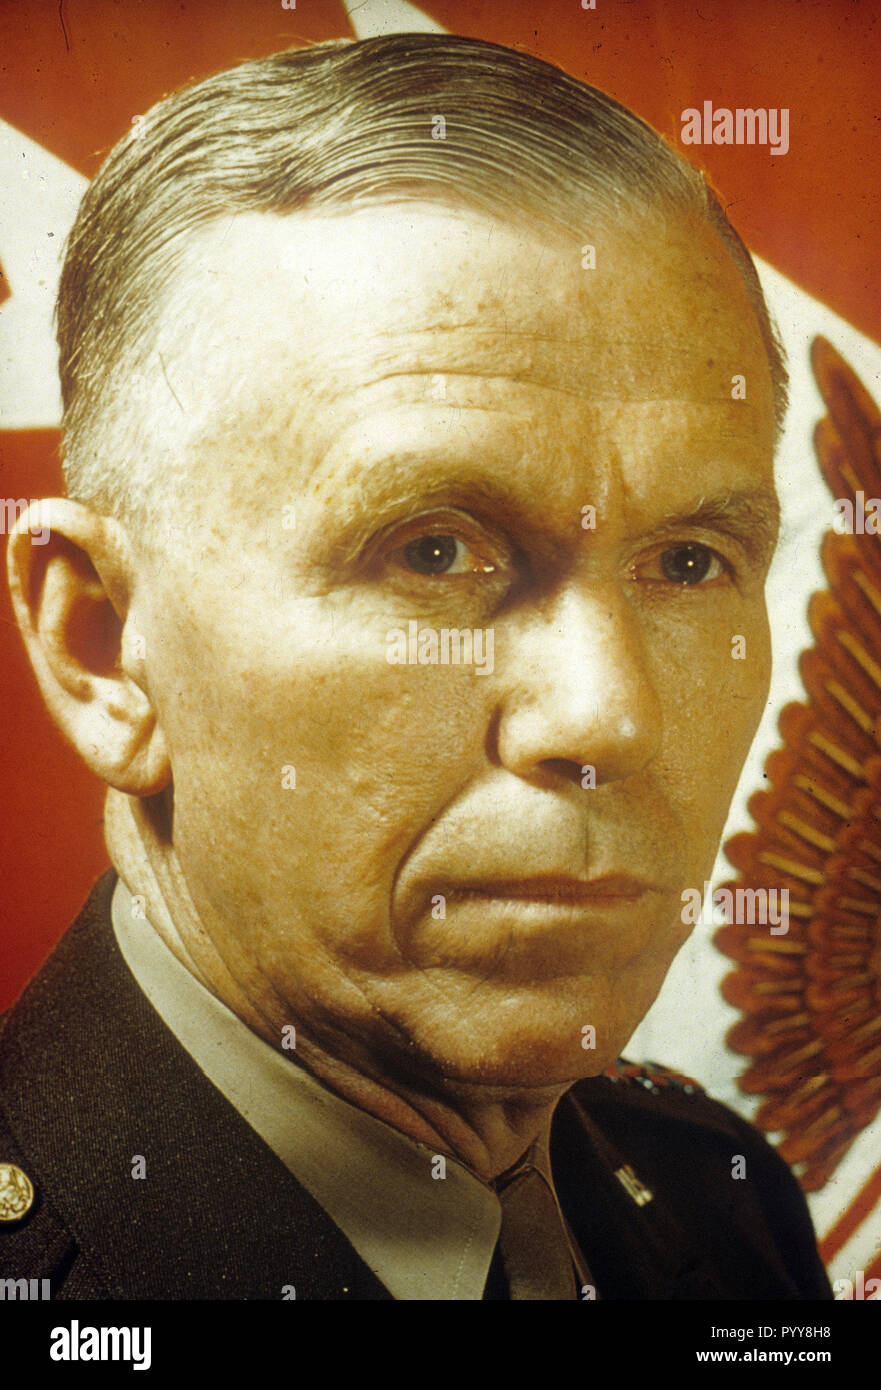 GEORGE C. MARSHALL (1880-1959) American soldier and statesman about 1944 - Stock Image